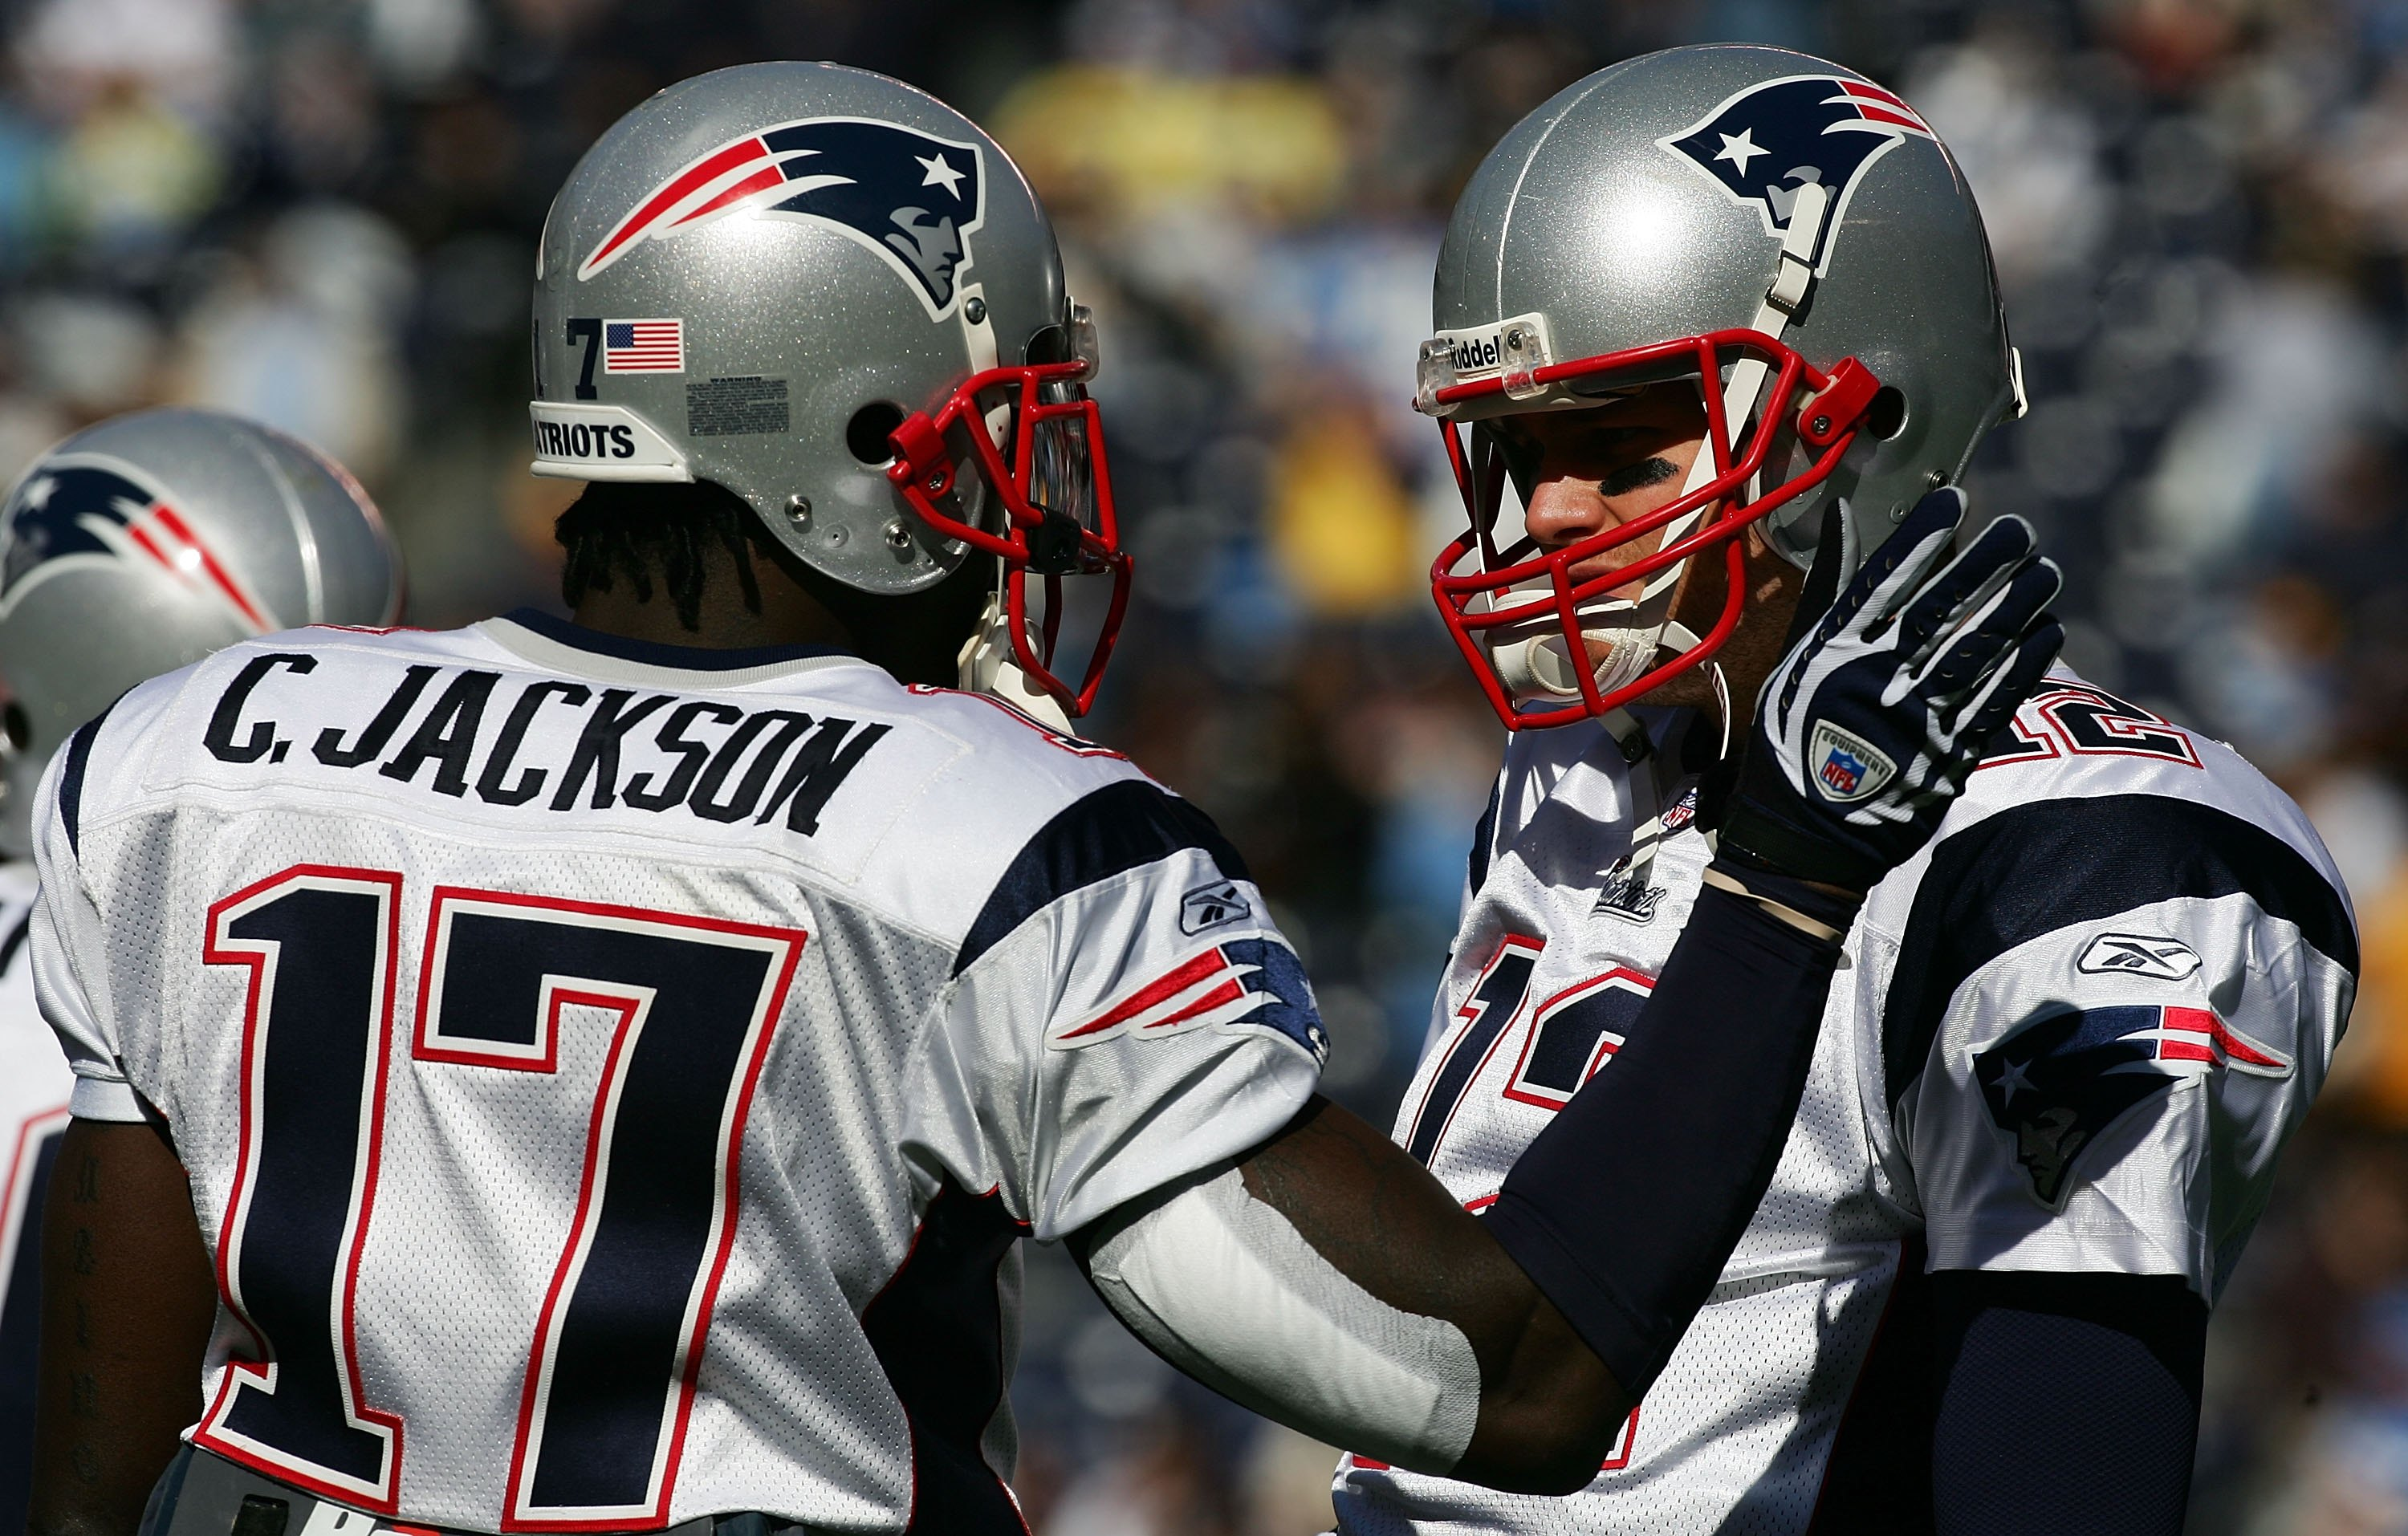 SAN DIEGO - JANUARY 14:  (R-L) Quarterback Tom Brady #12 of the New England Patriots talks with wide receiver Chad Jackson #17 before the game against the San Diego Chargers during the AFC Divisional Playoffs held on January 14, 2007 at Qualcomm Stadium i